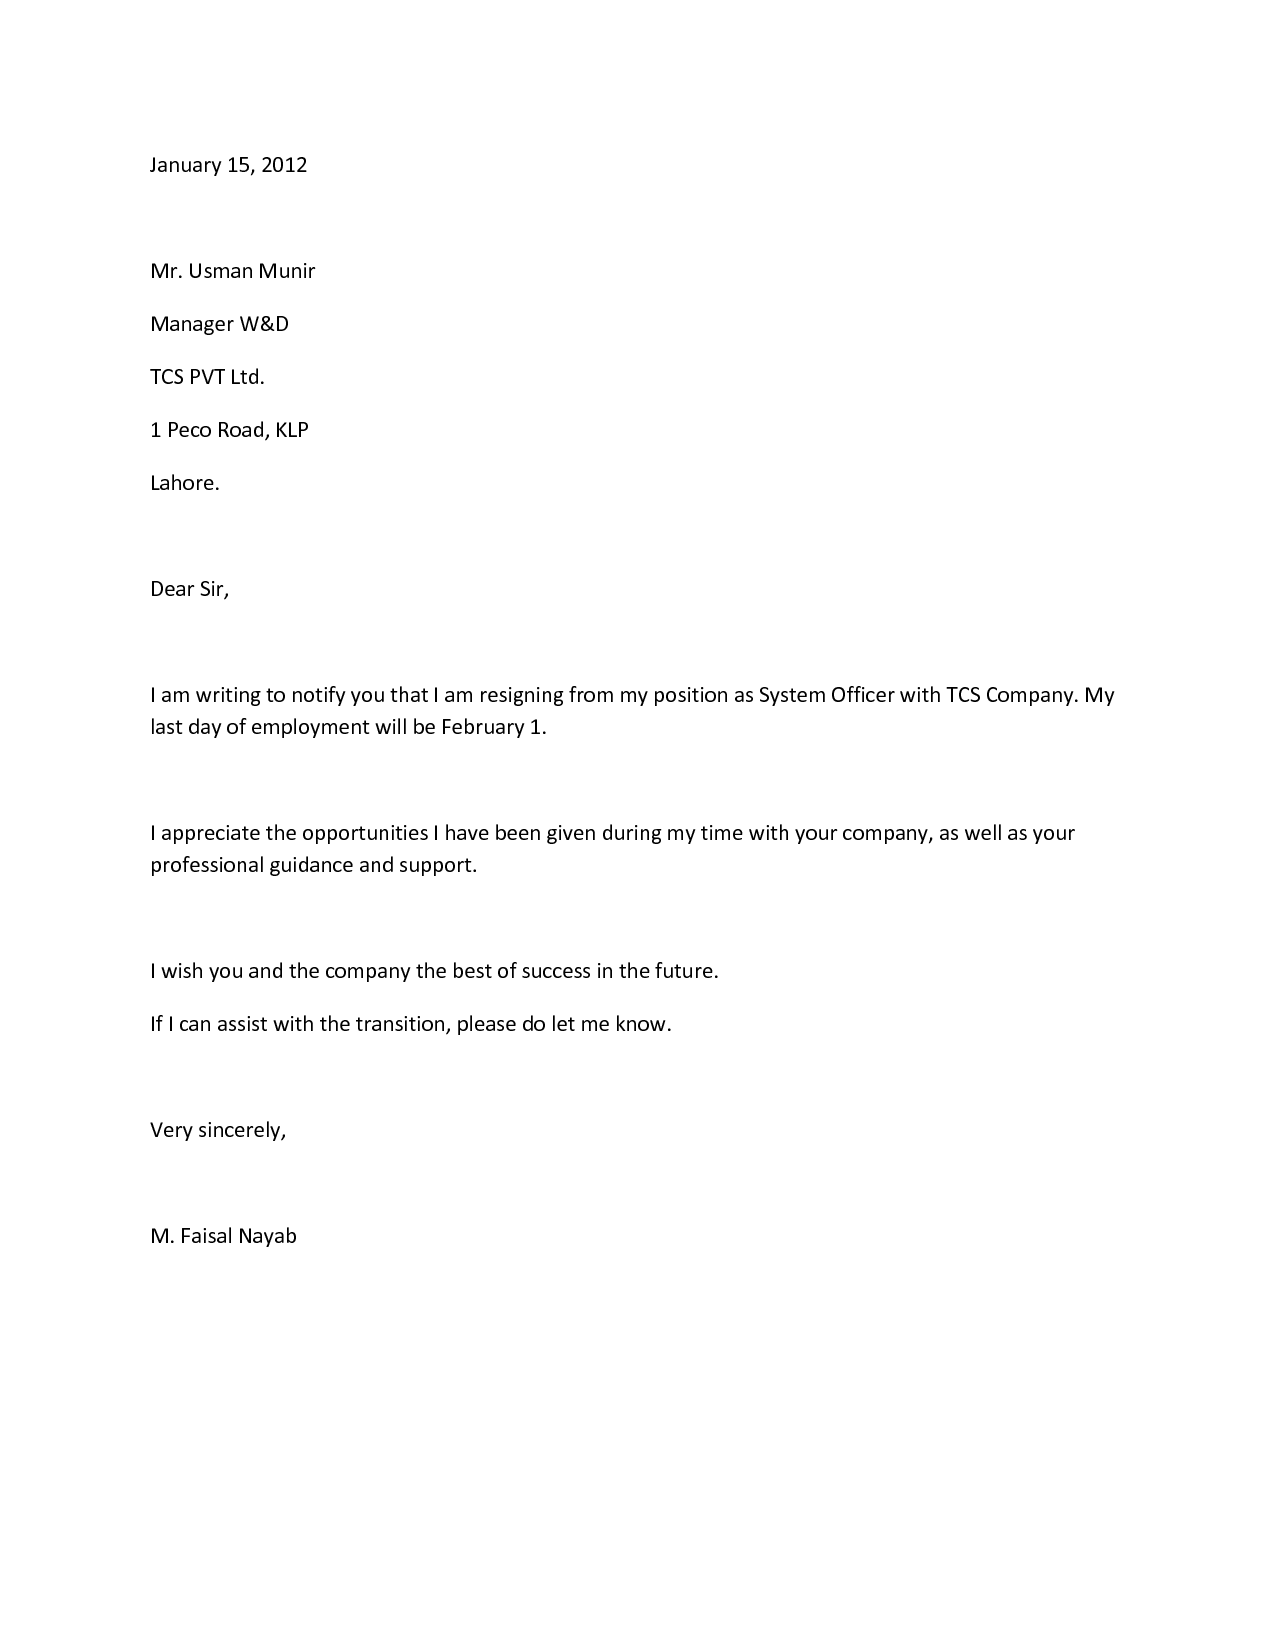 How to write a proper resignation letter images letter of how to write a proper resignation letter images altavistaventures Images